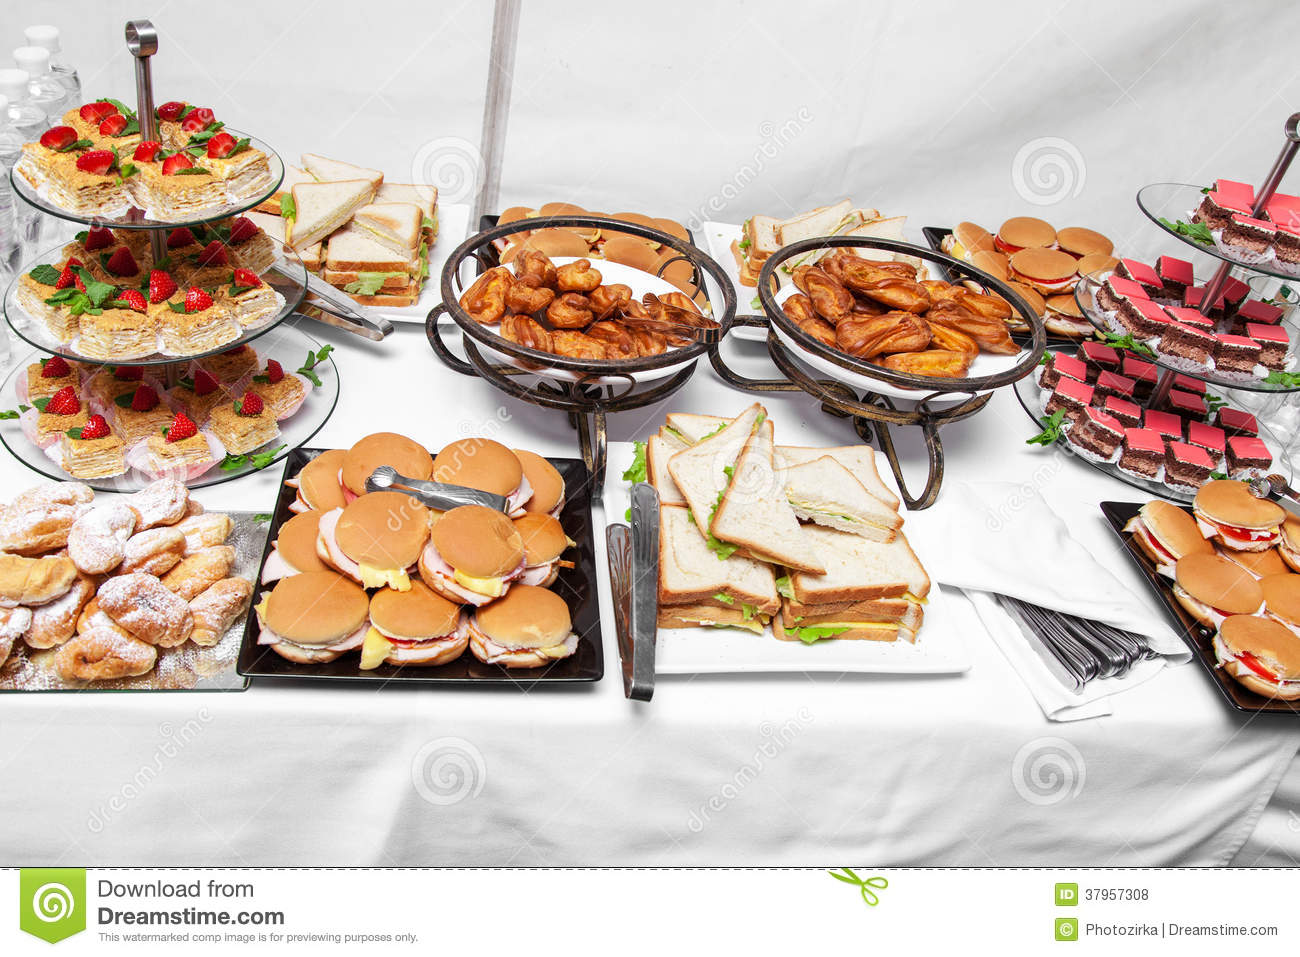 Buffet Breakfast (smorgasbord) Stock Photo - Image: 39753095